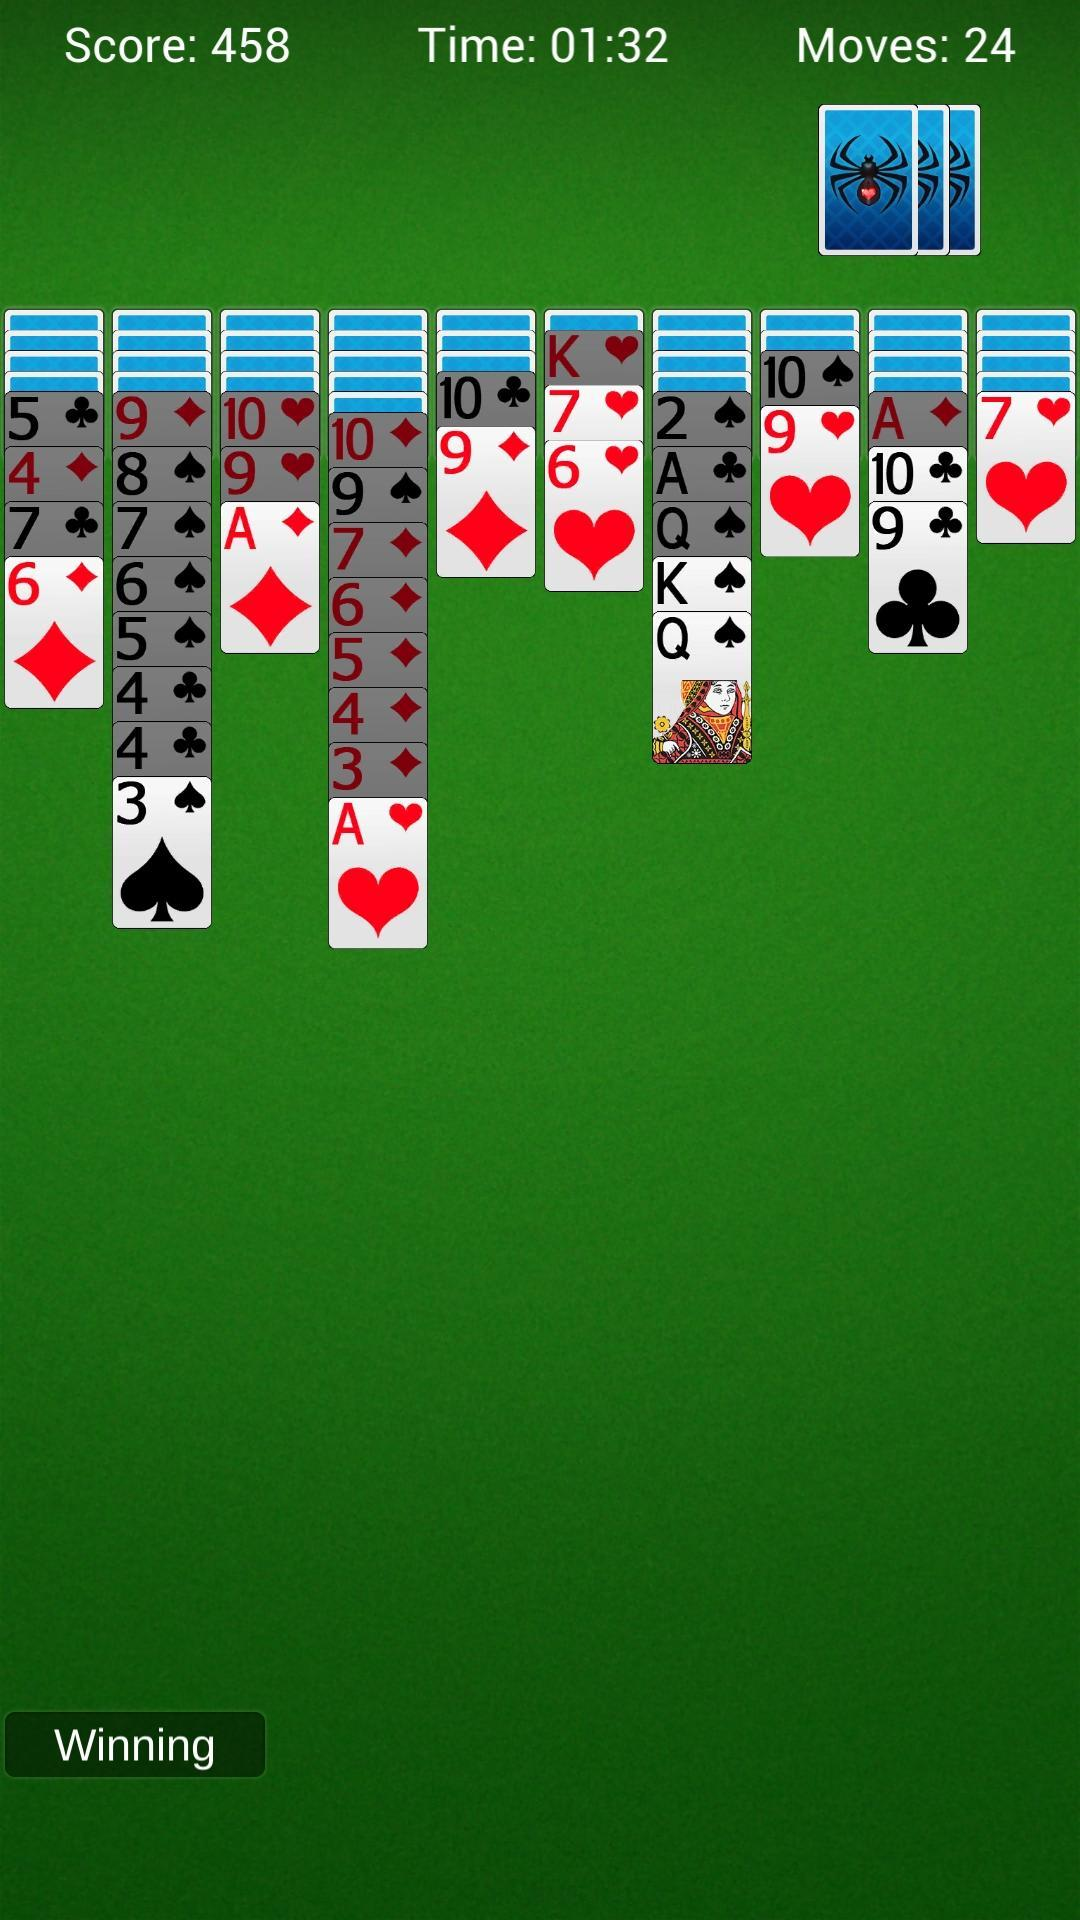 Spider Solitaire - Best Classic Card Games 1.8.0.20210225 Screenshot 8